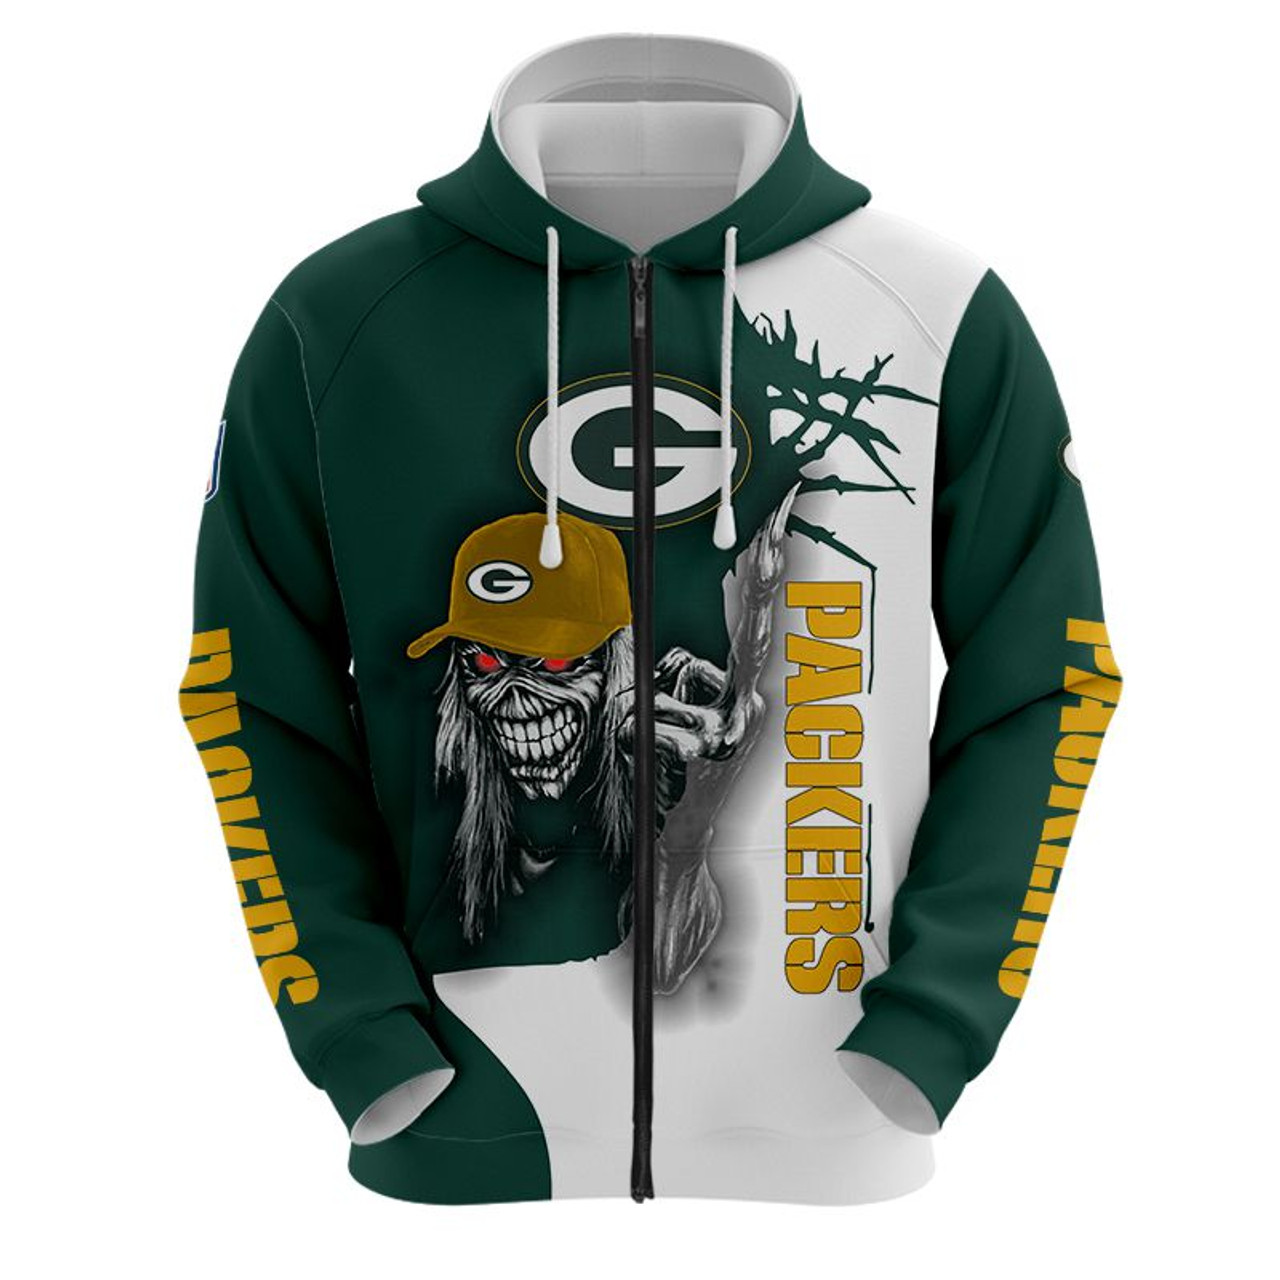 **(OFFICIAL-N.F.L.GREEN-BAY-PACKERS-TRENDY-ZIPPERED-HOODIE & PACKERS-MUMMIFIED-SKELETON/NICE-CUSTOM-3D-EFFECT-GRAPHIC-PRINTED-ALL-OVER-DOUBLE-SIDED-DESIGNED/OFFICIAL-PACKERS-TEAM-COLORS & OFFICIAL-PACKERS-TEAM-LOGOS/WARM-PREMIUM-ZIPPERED-HOODIES)**